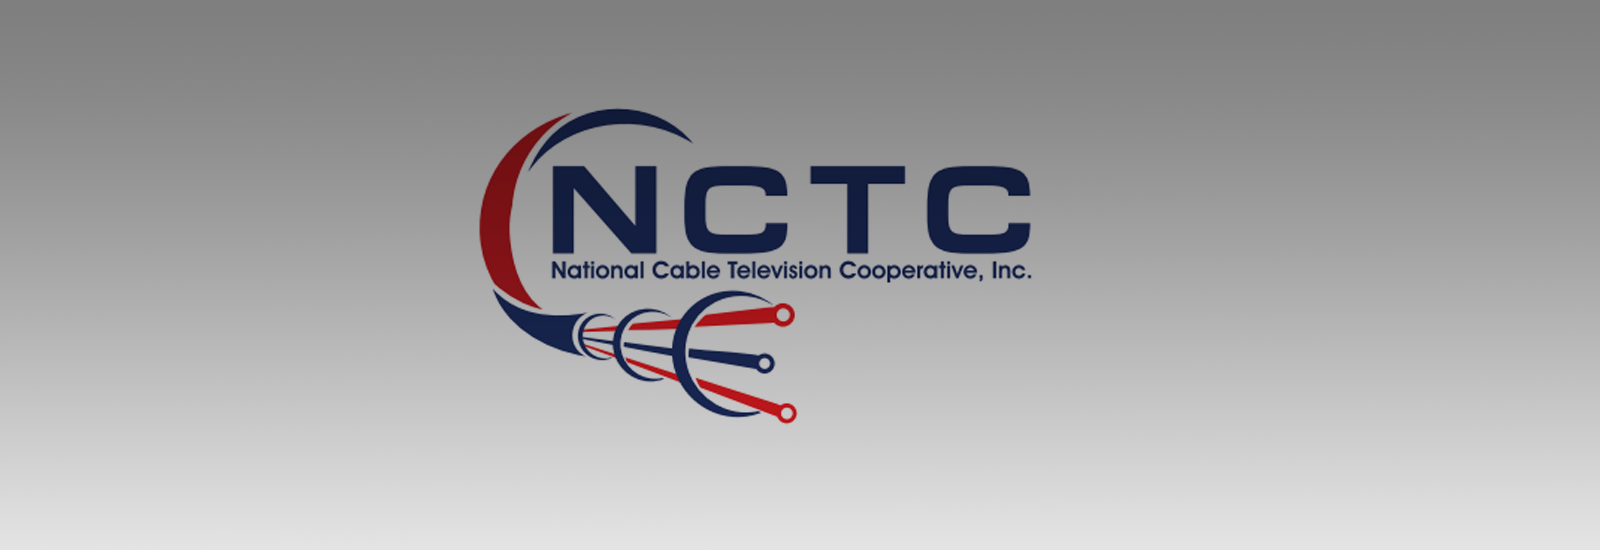 HITN Expands Its Distribution Opportunities Through The National Cable Television Cooperation (NCTC)